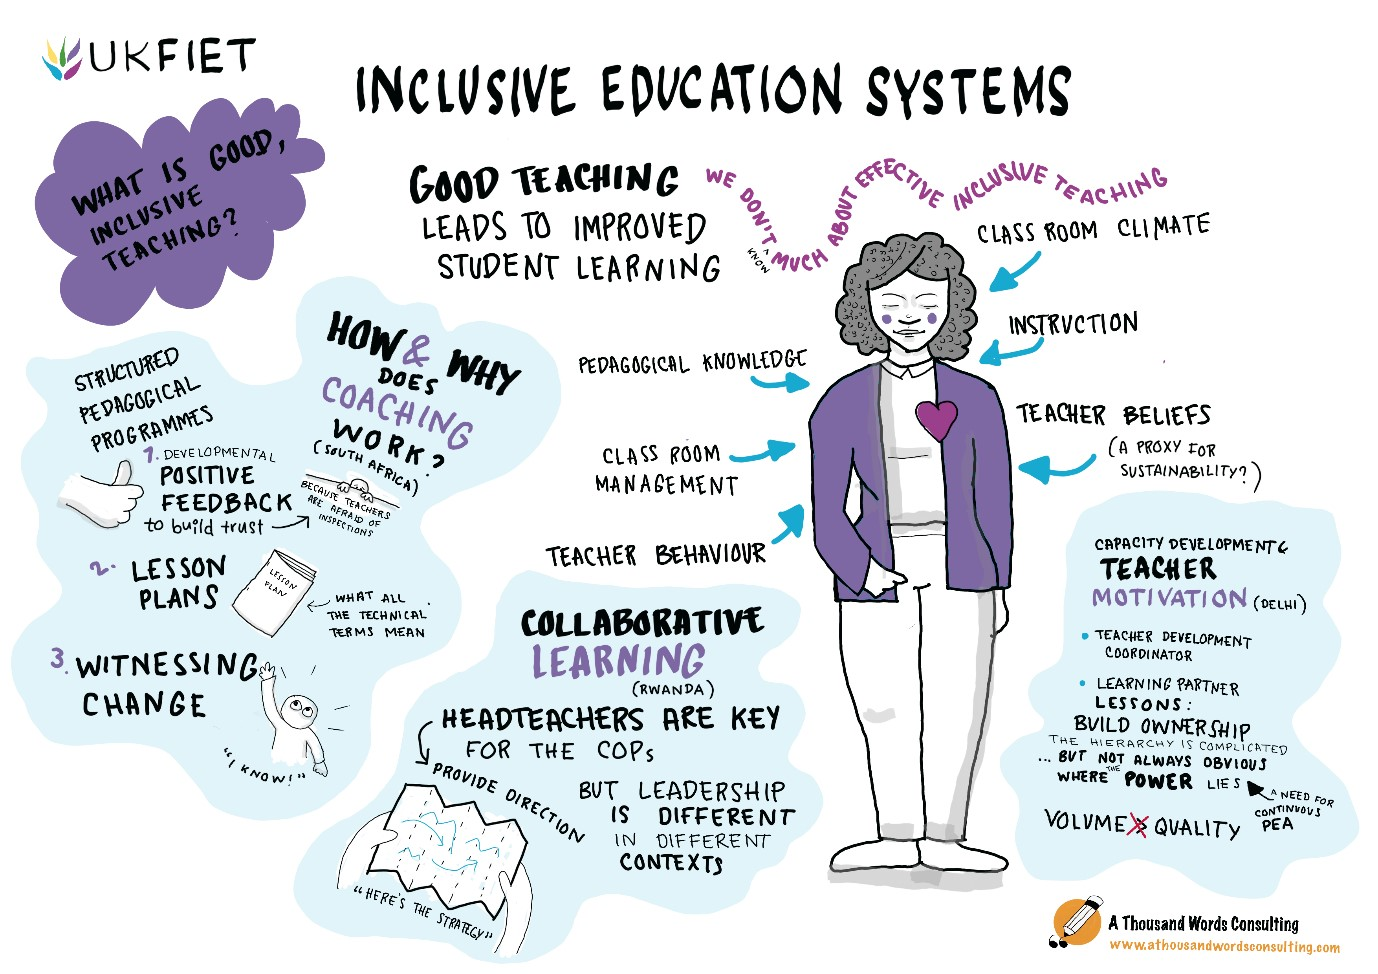 Visual storytelling of sessions at the UKFIET 2019 conference